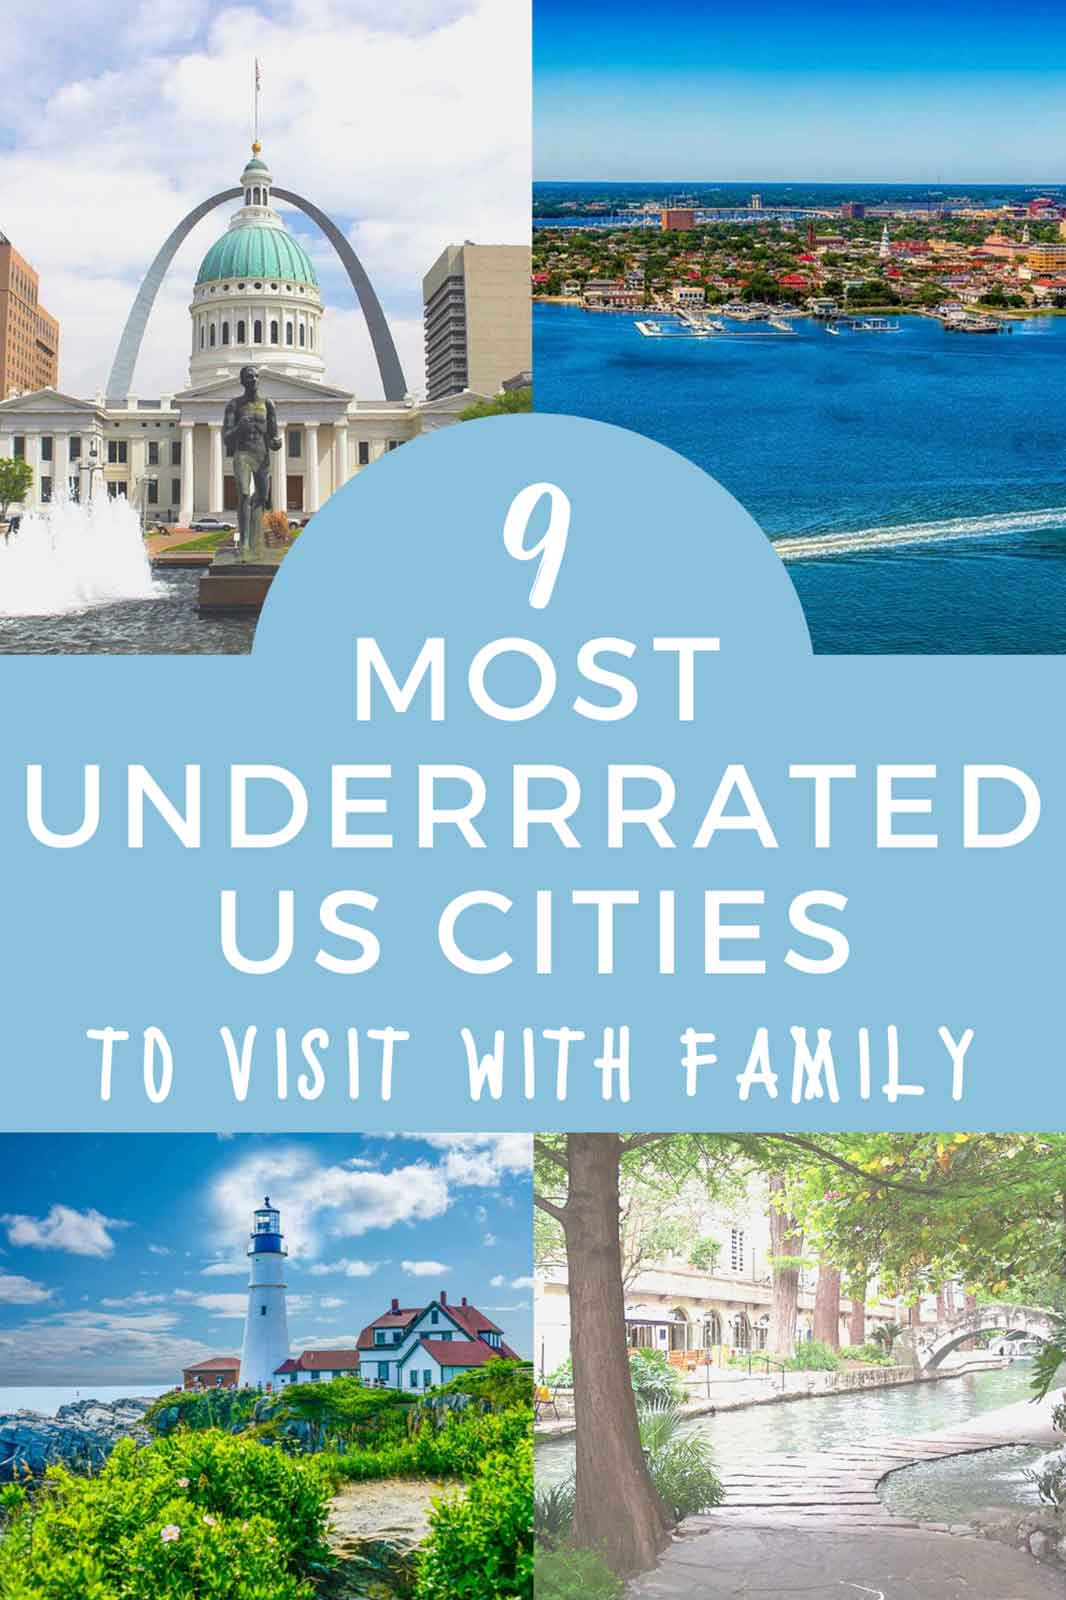 The Nine Most Underrated US Cities to Visit with Family